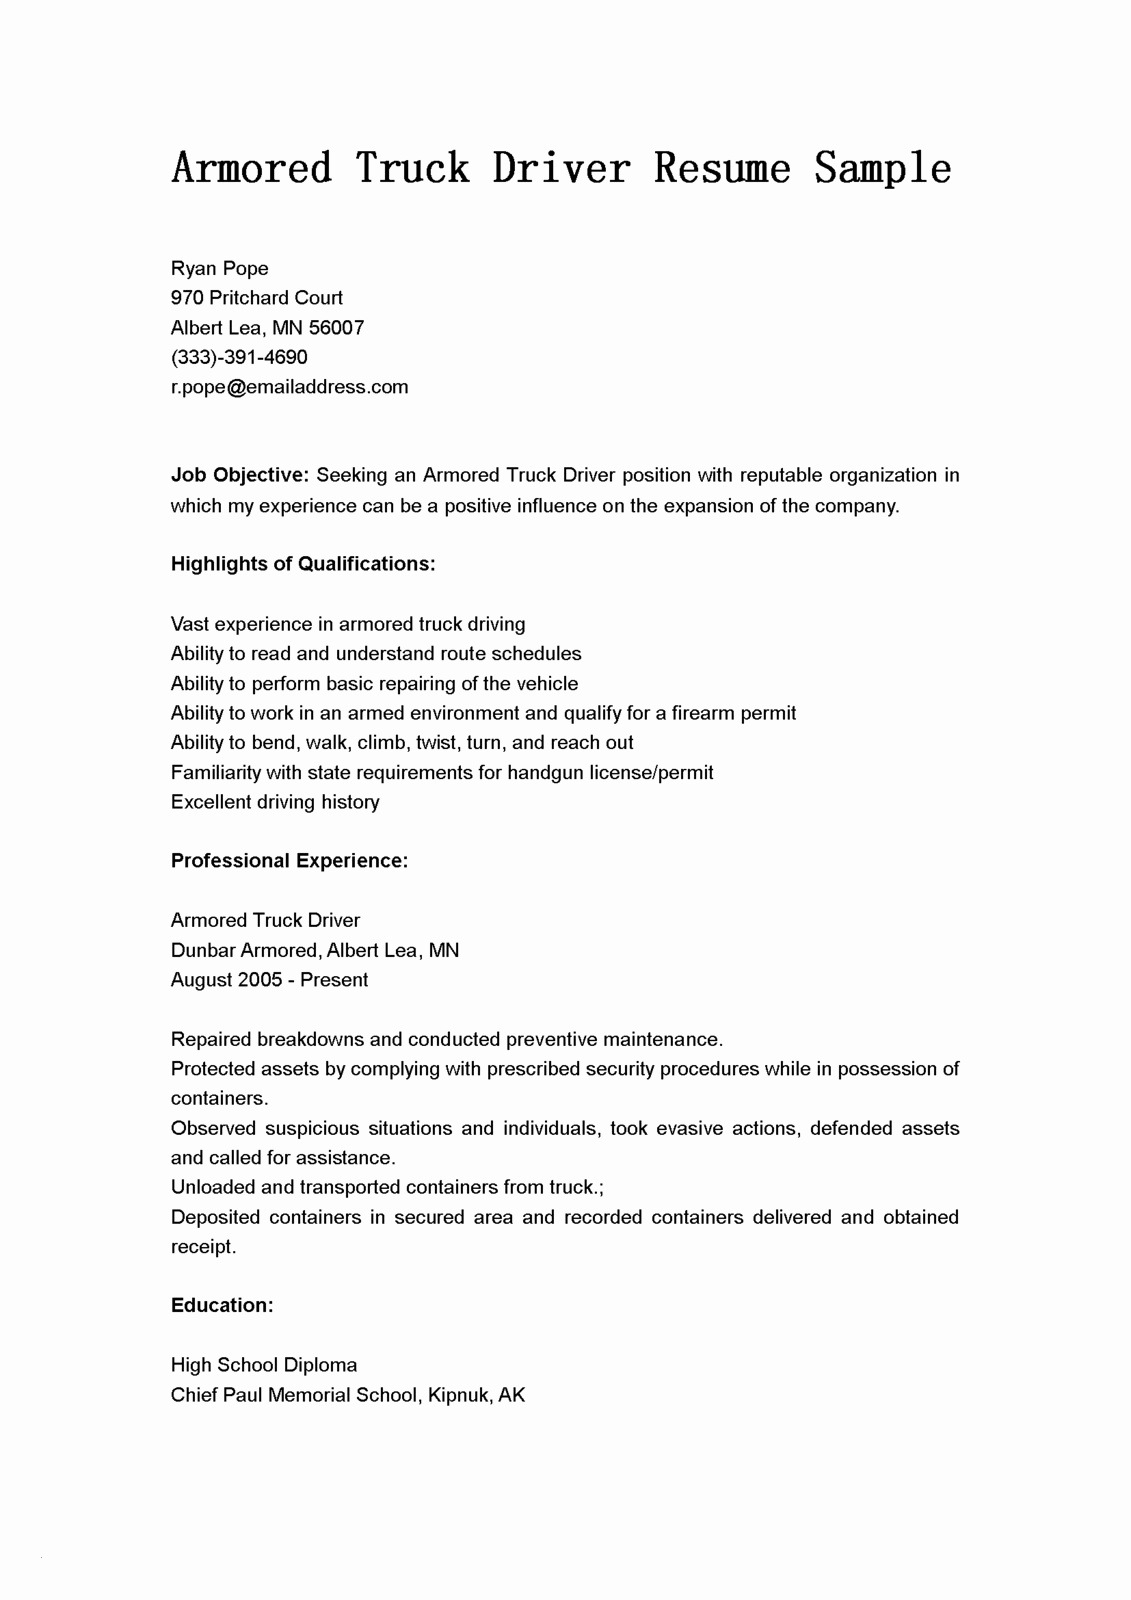 Cdl Truck Driver Job Description for Resume - Delivery Driver Skills for Resume Fresh Personal Driver Job